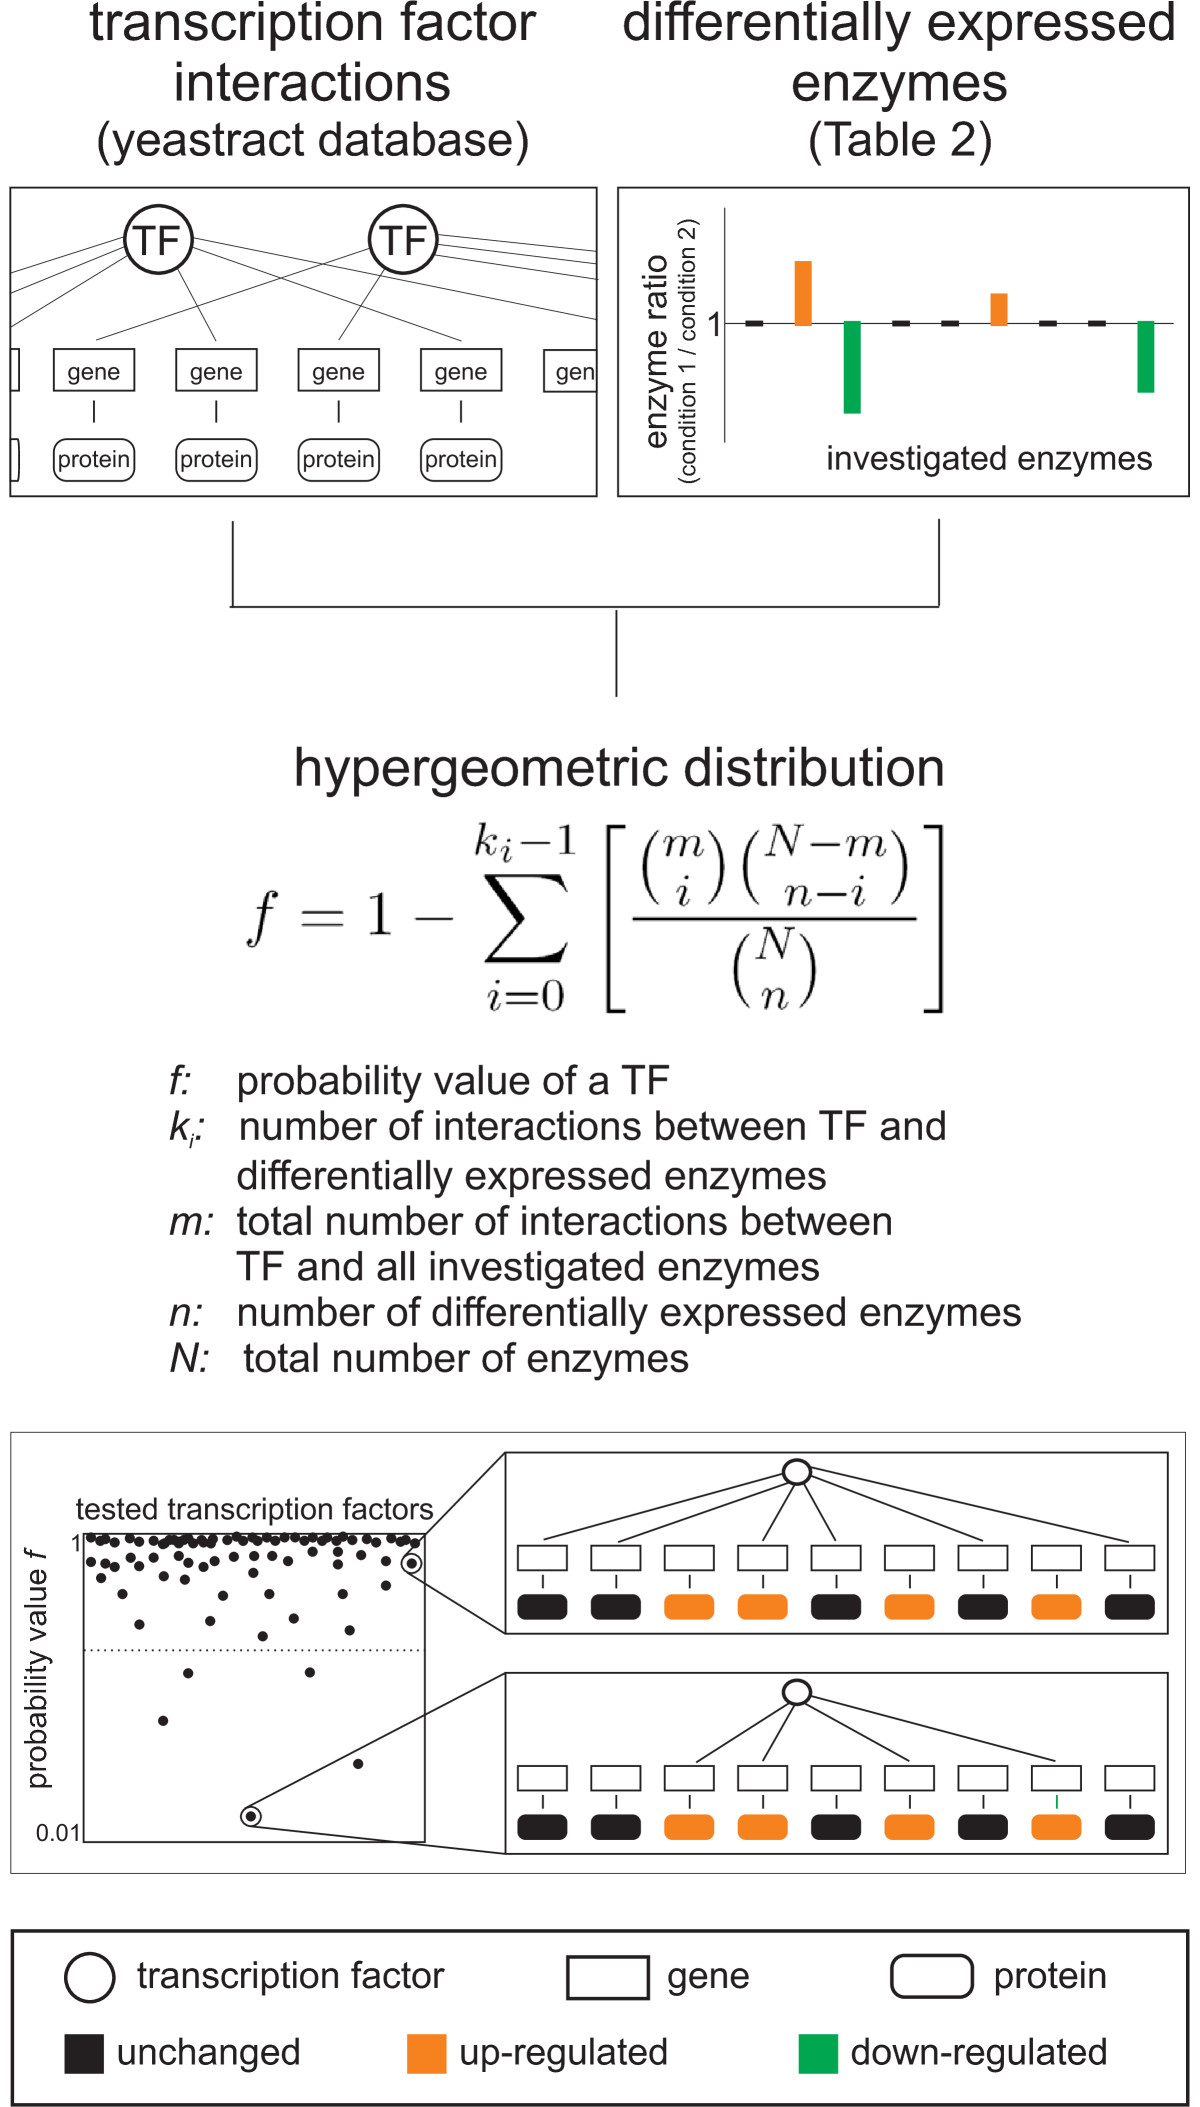 https://static-content.springer.com/image/art%3A10.1186%2F1752-0509-4-12/MediaObjects/12918_2009_Article_401_Fig4_HTML.jpg